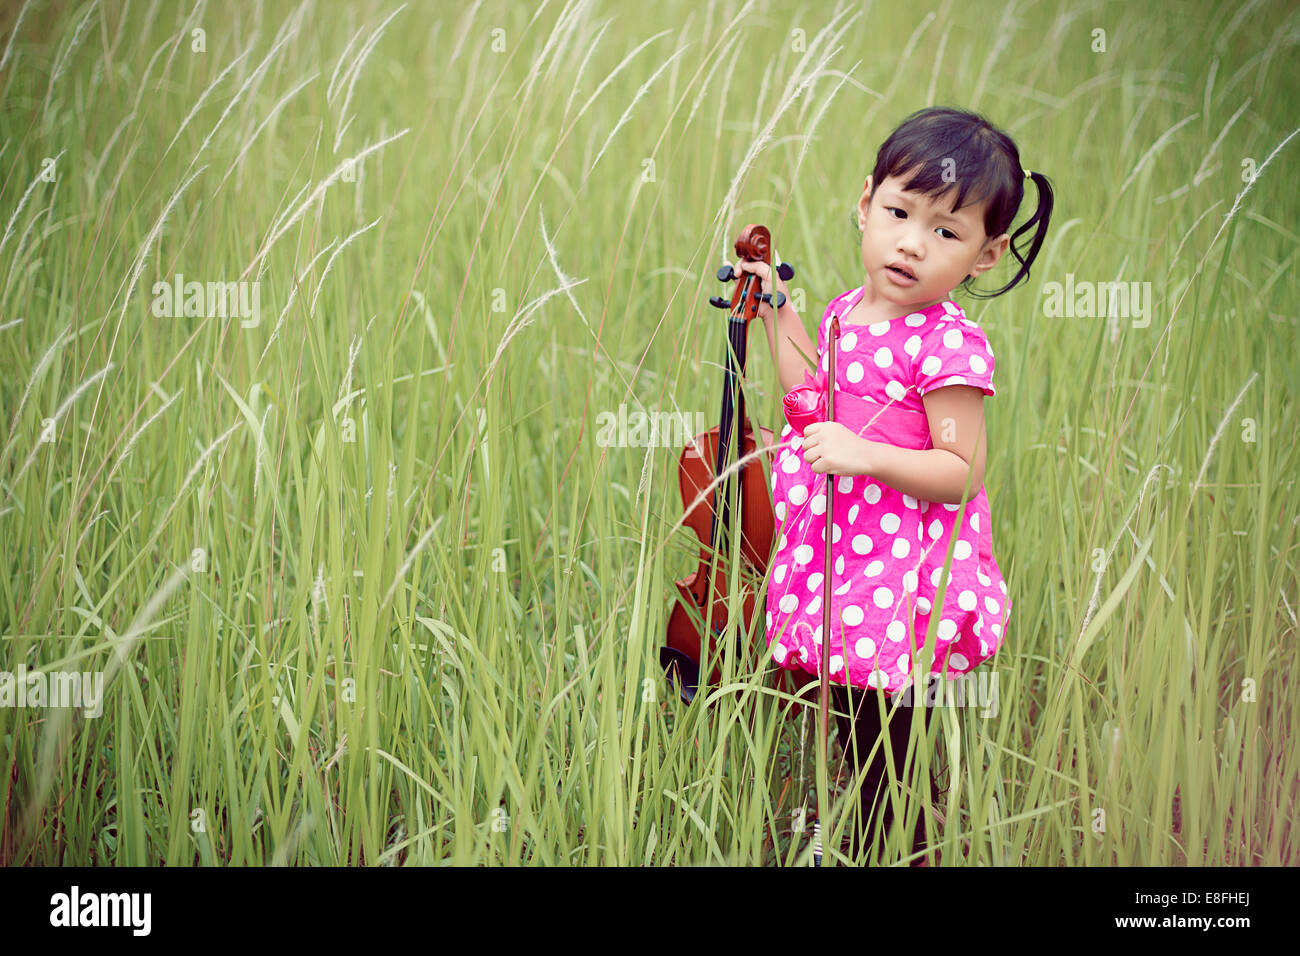 Girl standing in meadow holding violin - Stock Image